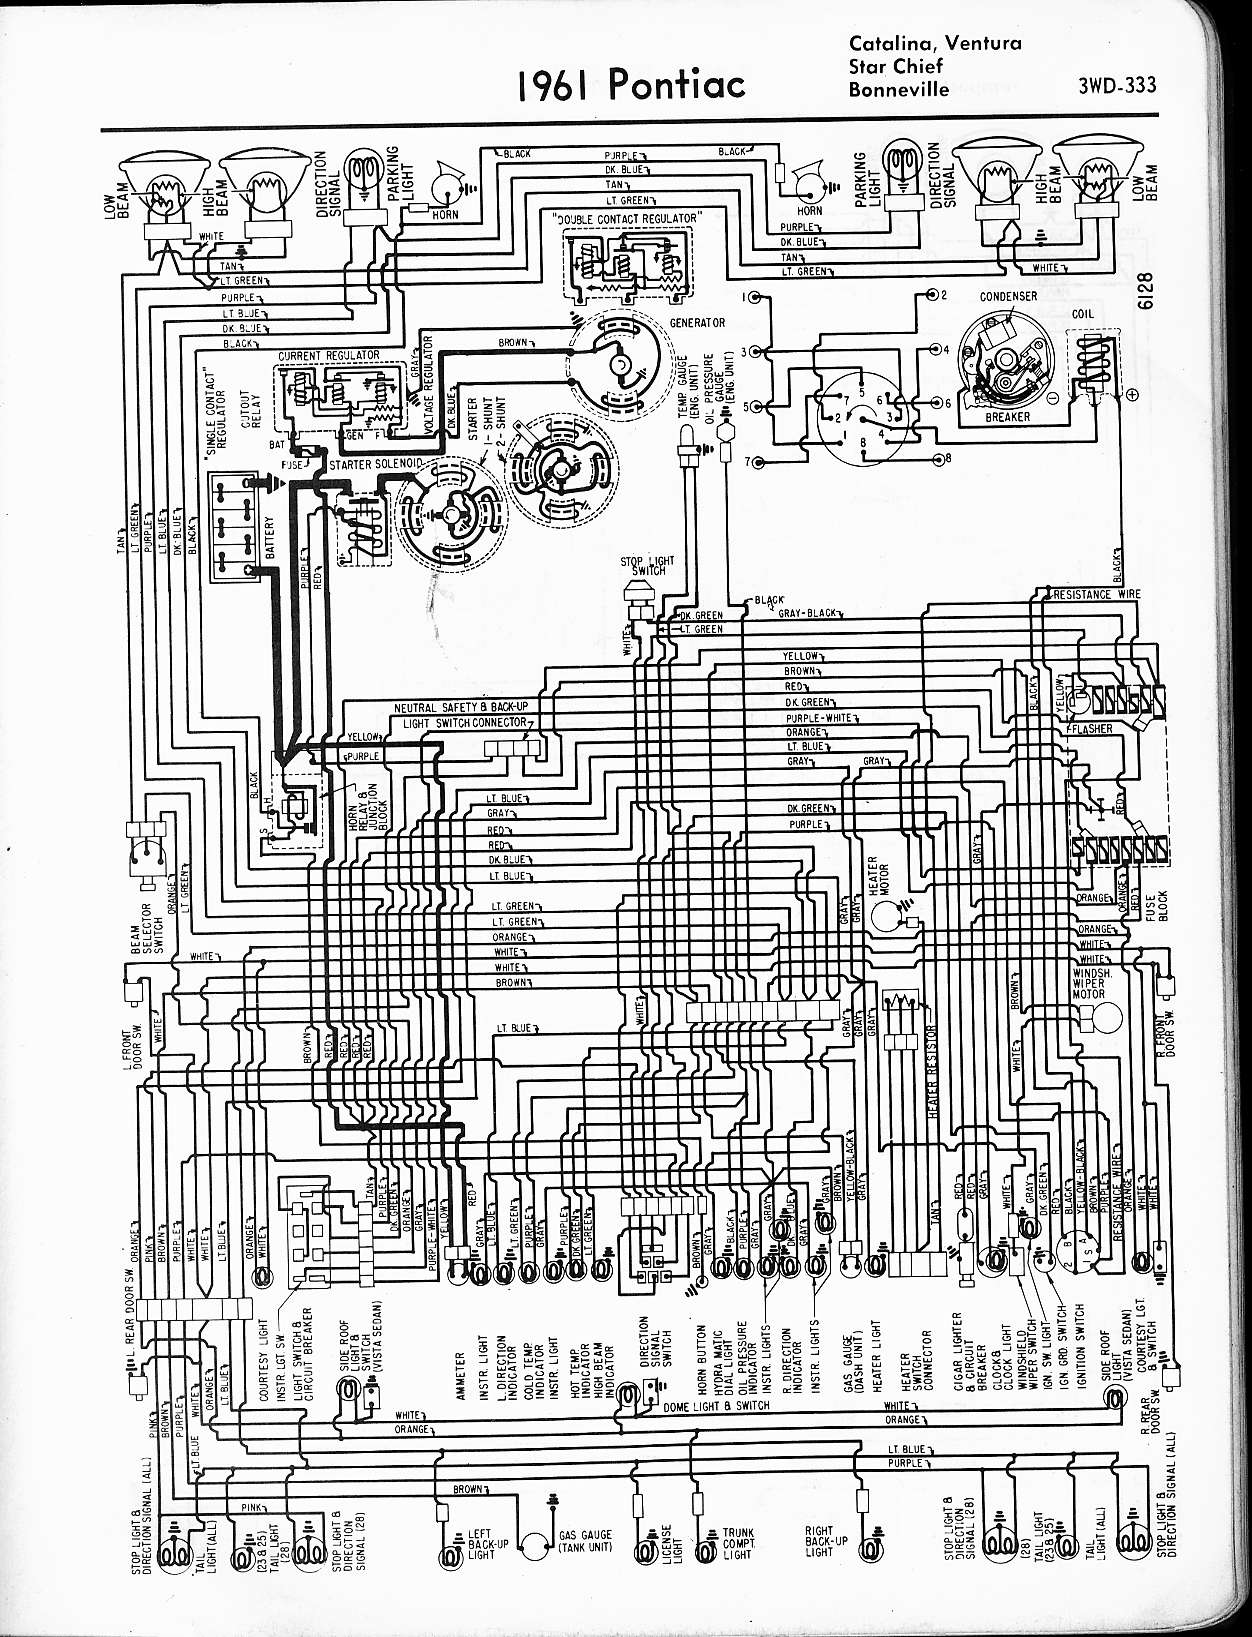 1964 pontiac lemans wiring diagram data wiring diagram blog 1976 Pontiac LeMans wallace racing wiring diagrams 64 pontiac lemans 1964 pontiac lemans wiring diagram